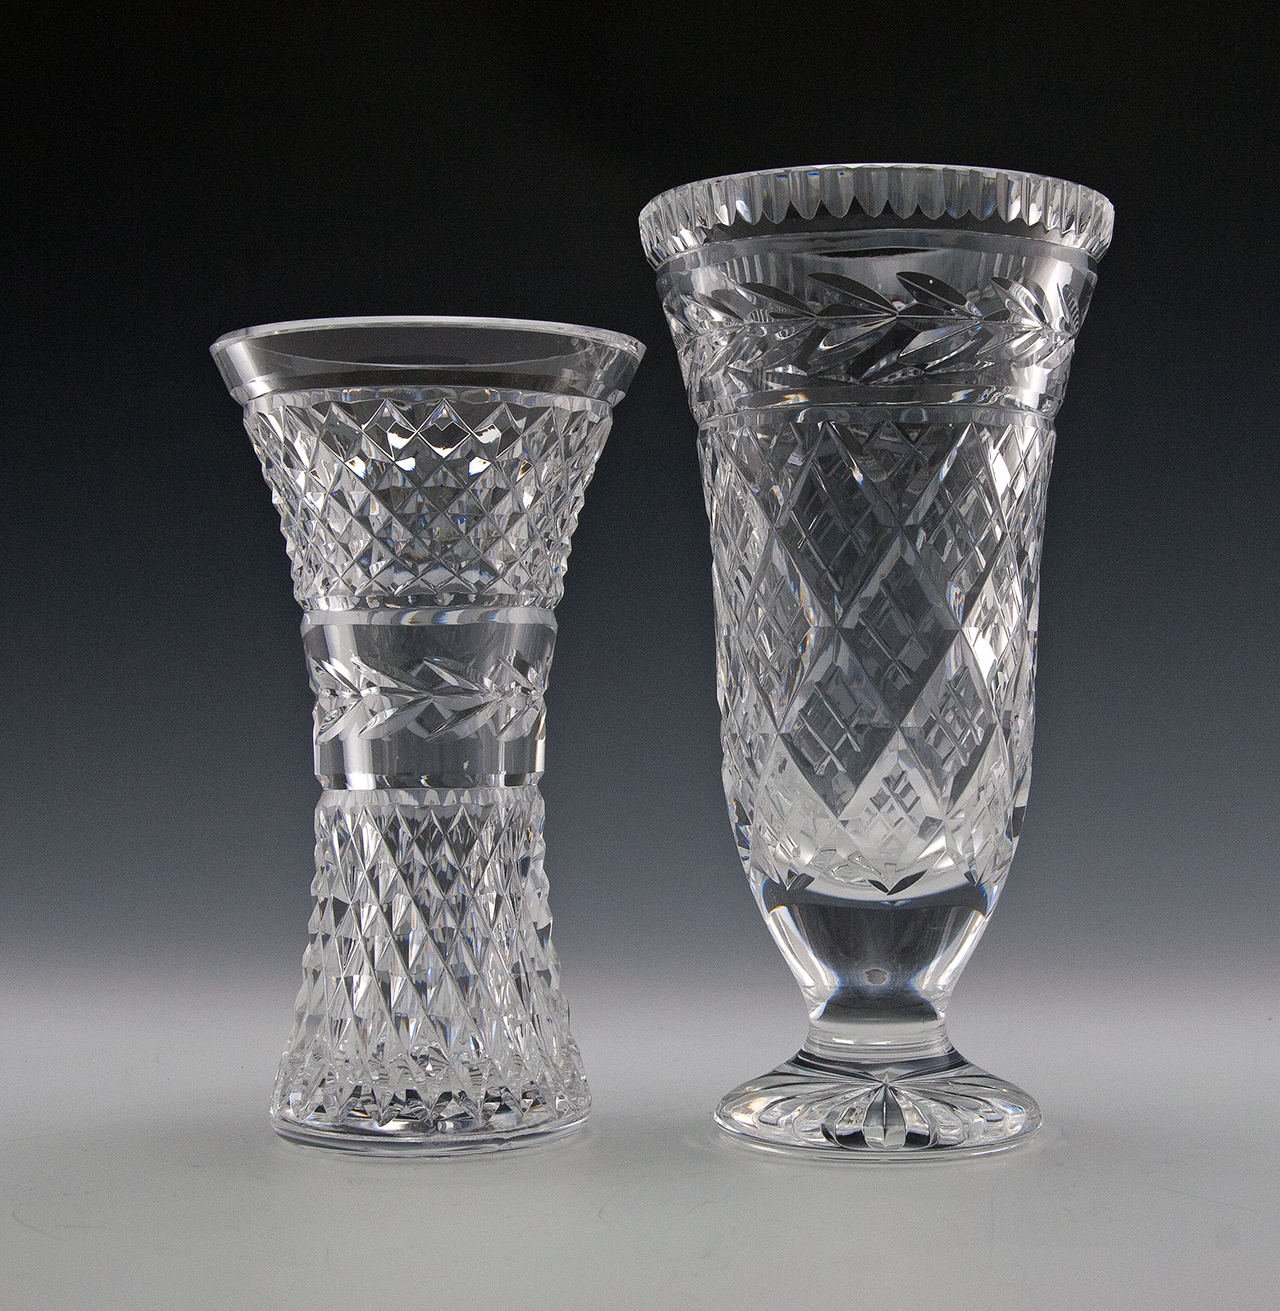 Largest Independent Retailer of Waterford Crystal Crystal